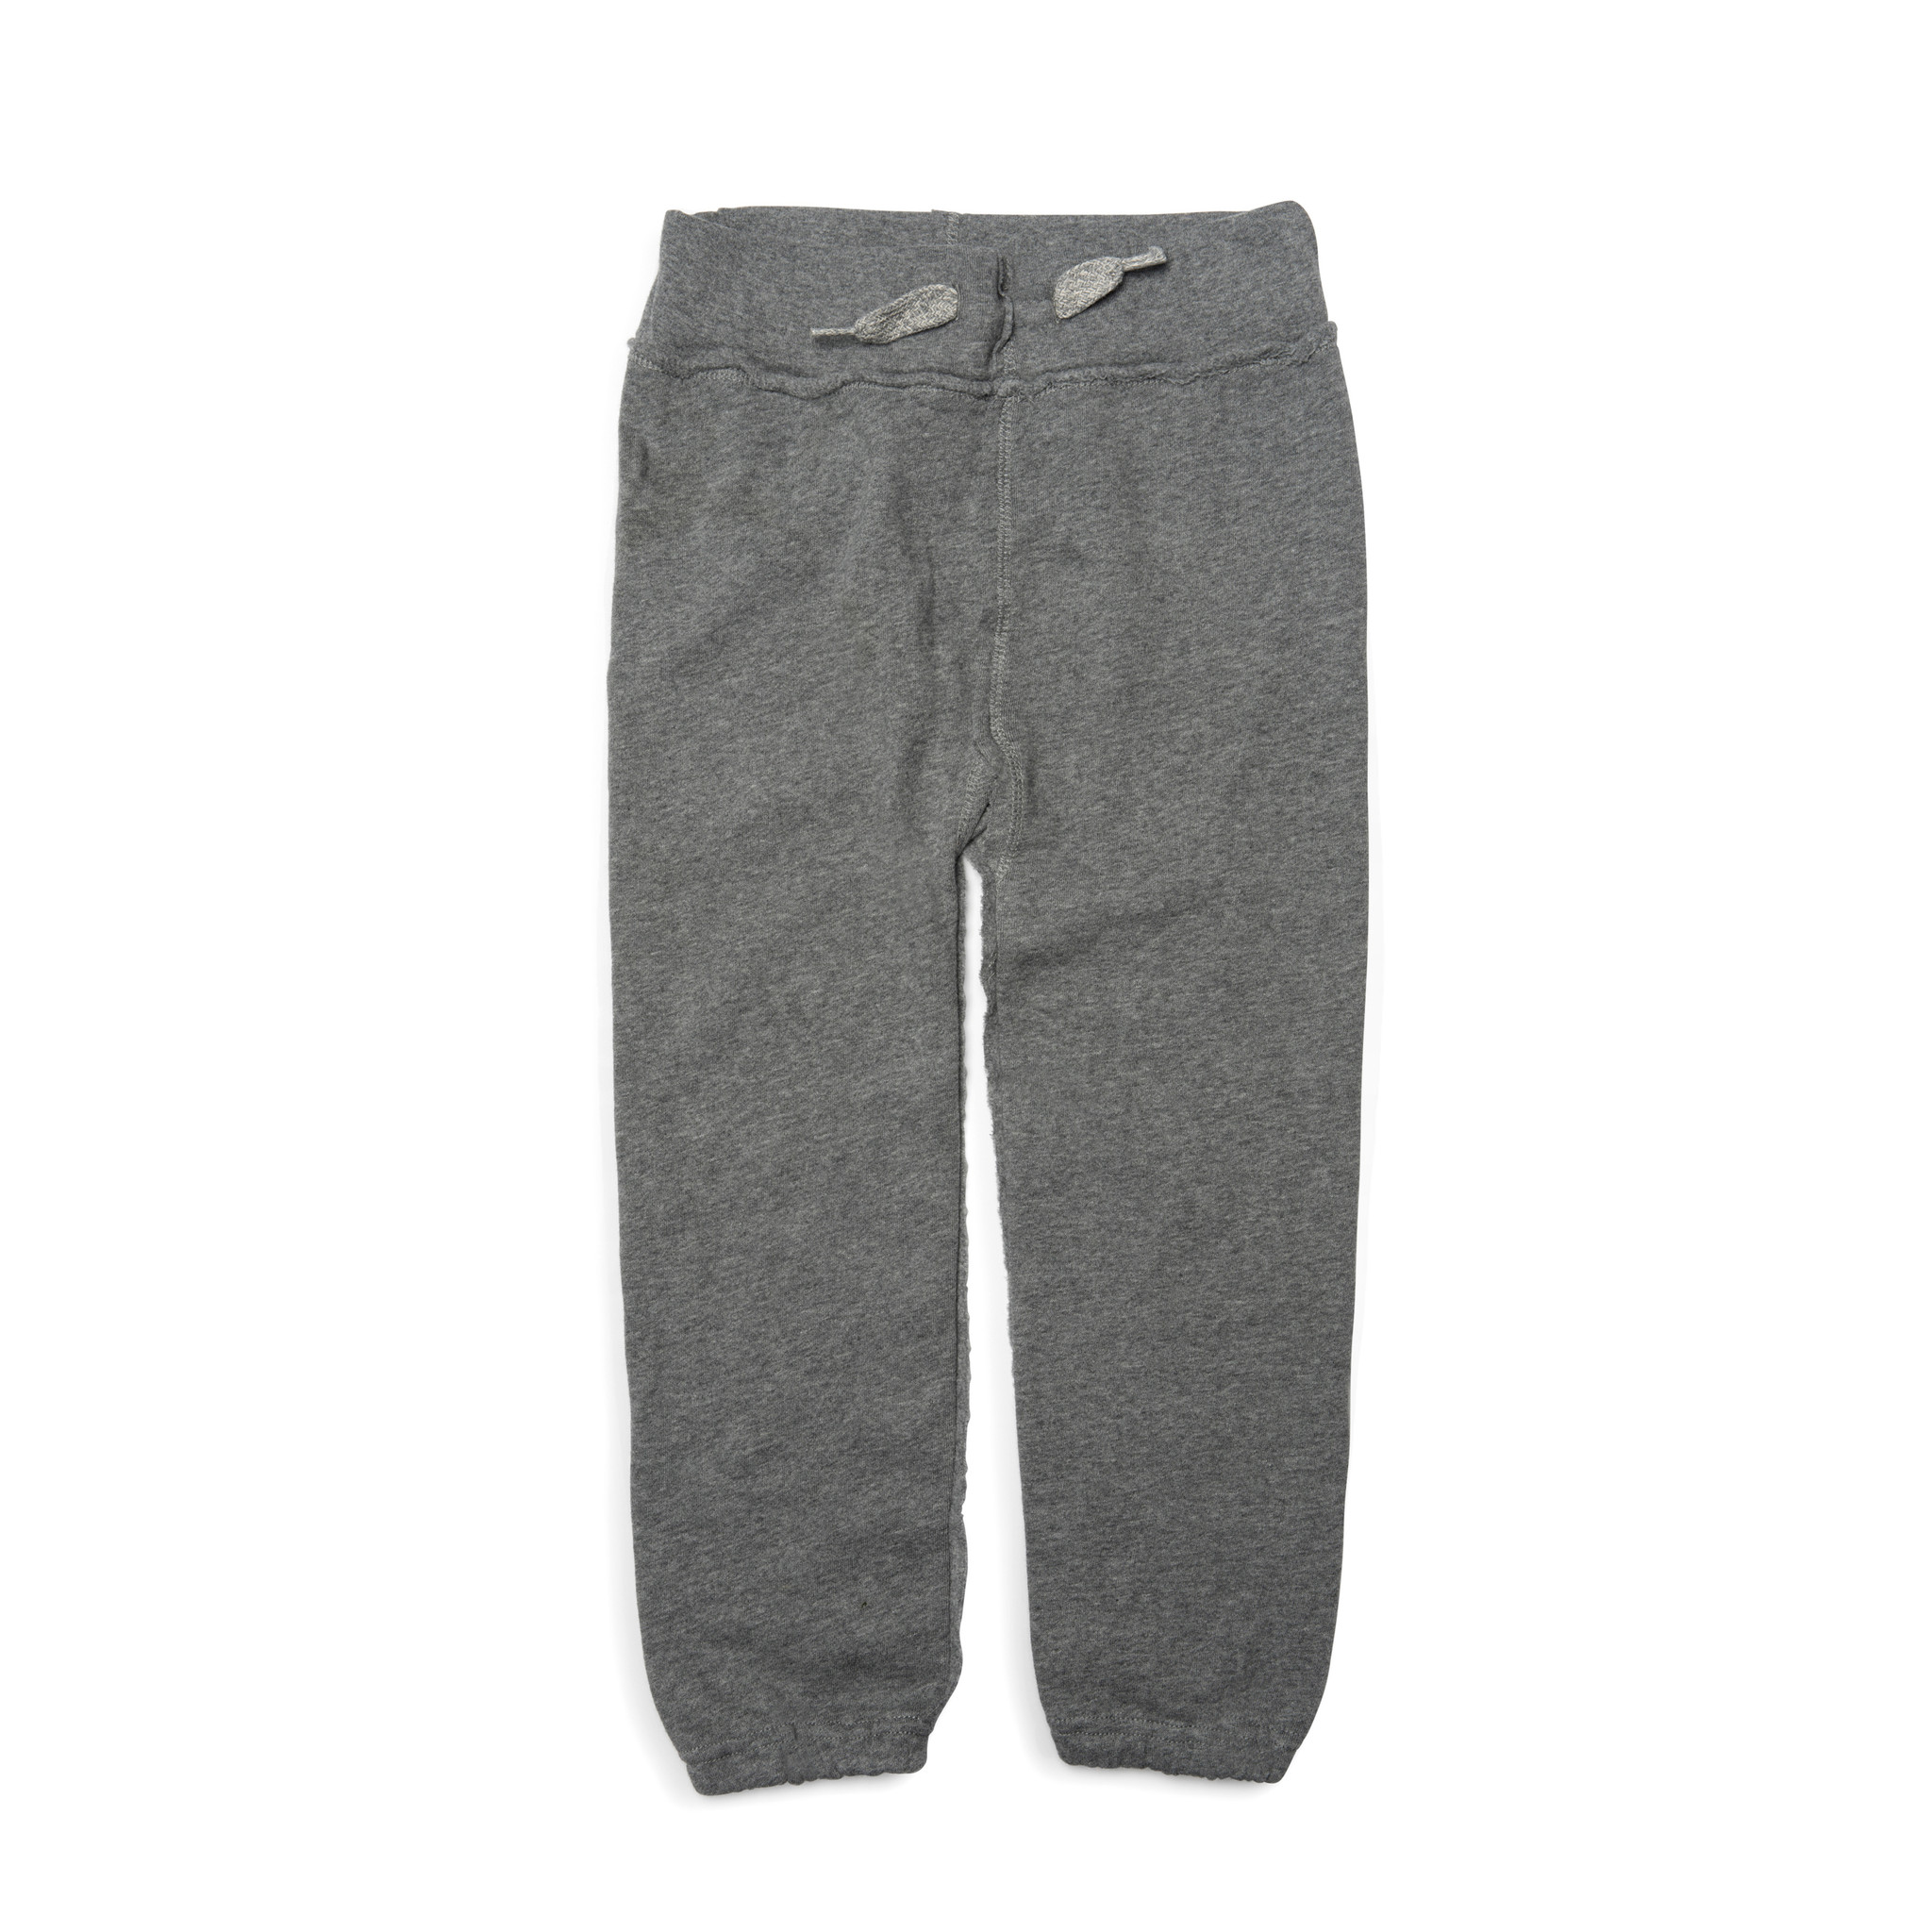 Appaman Grey Gym Sweats